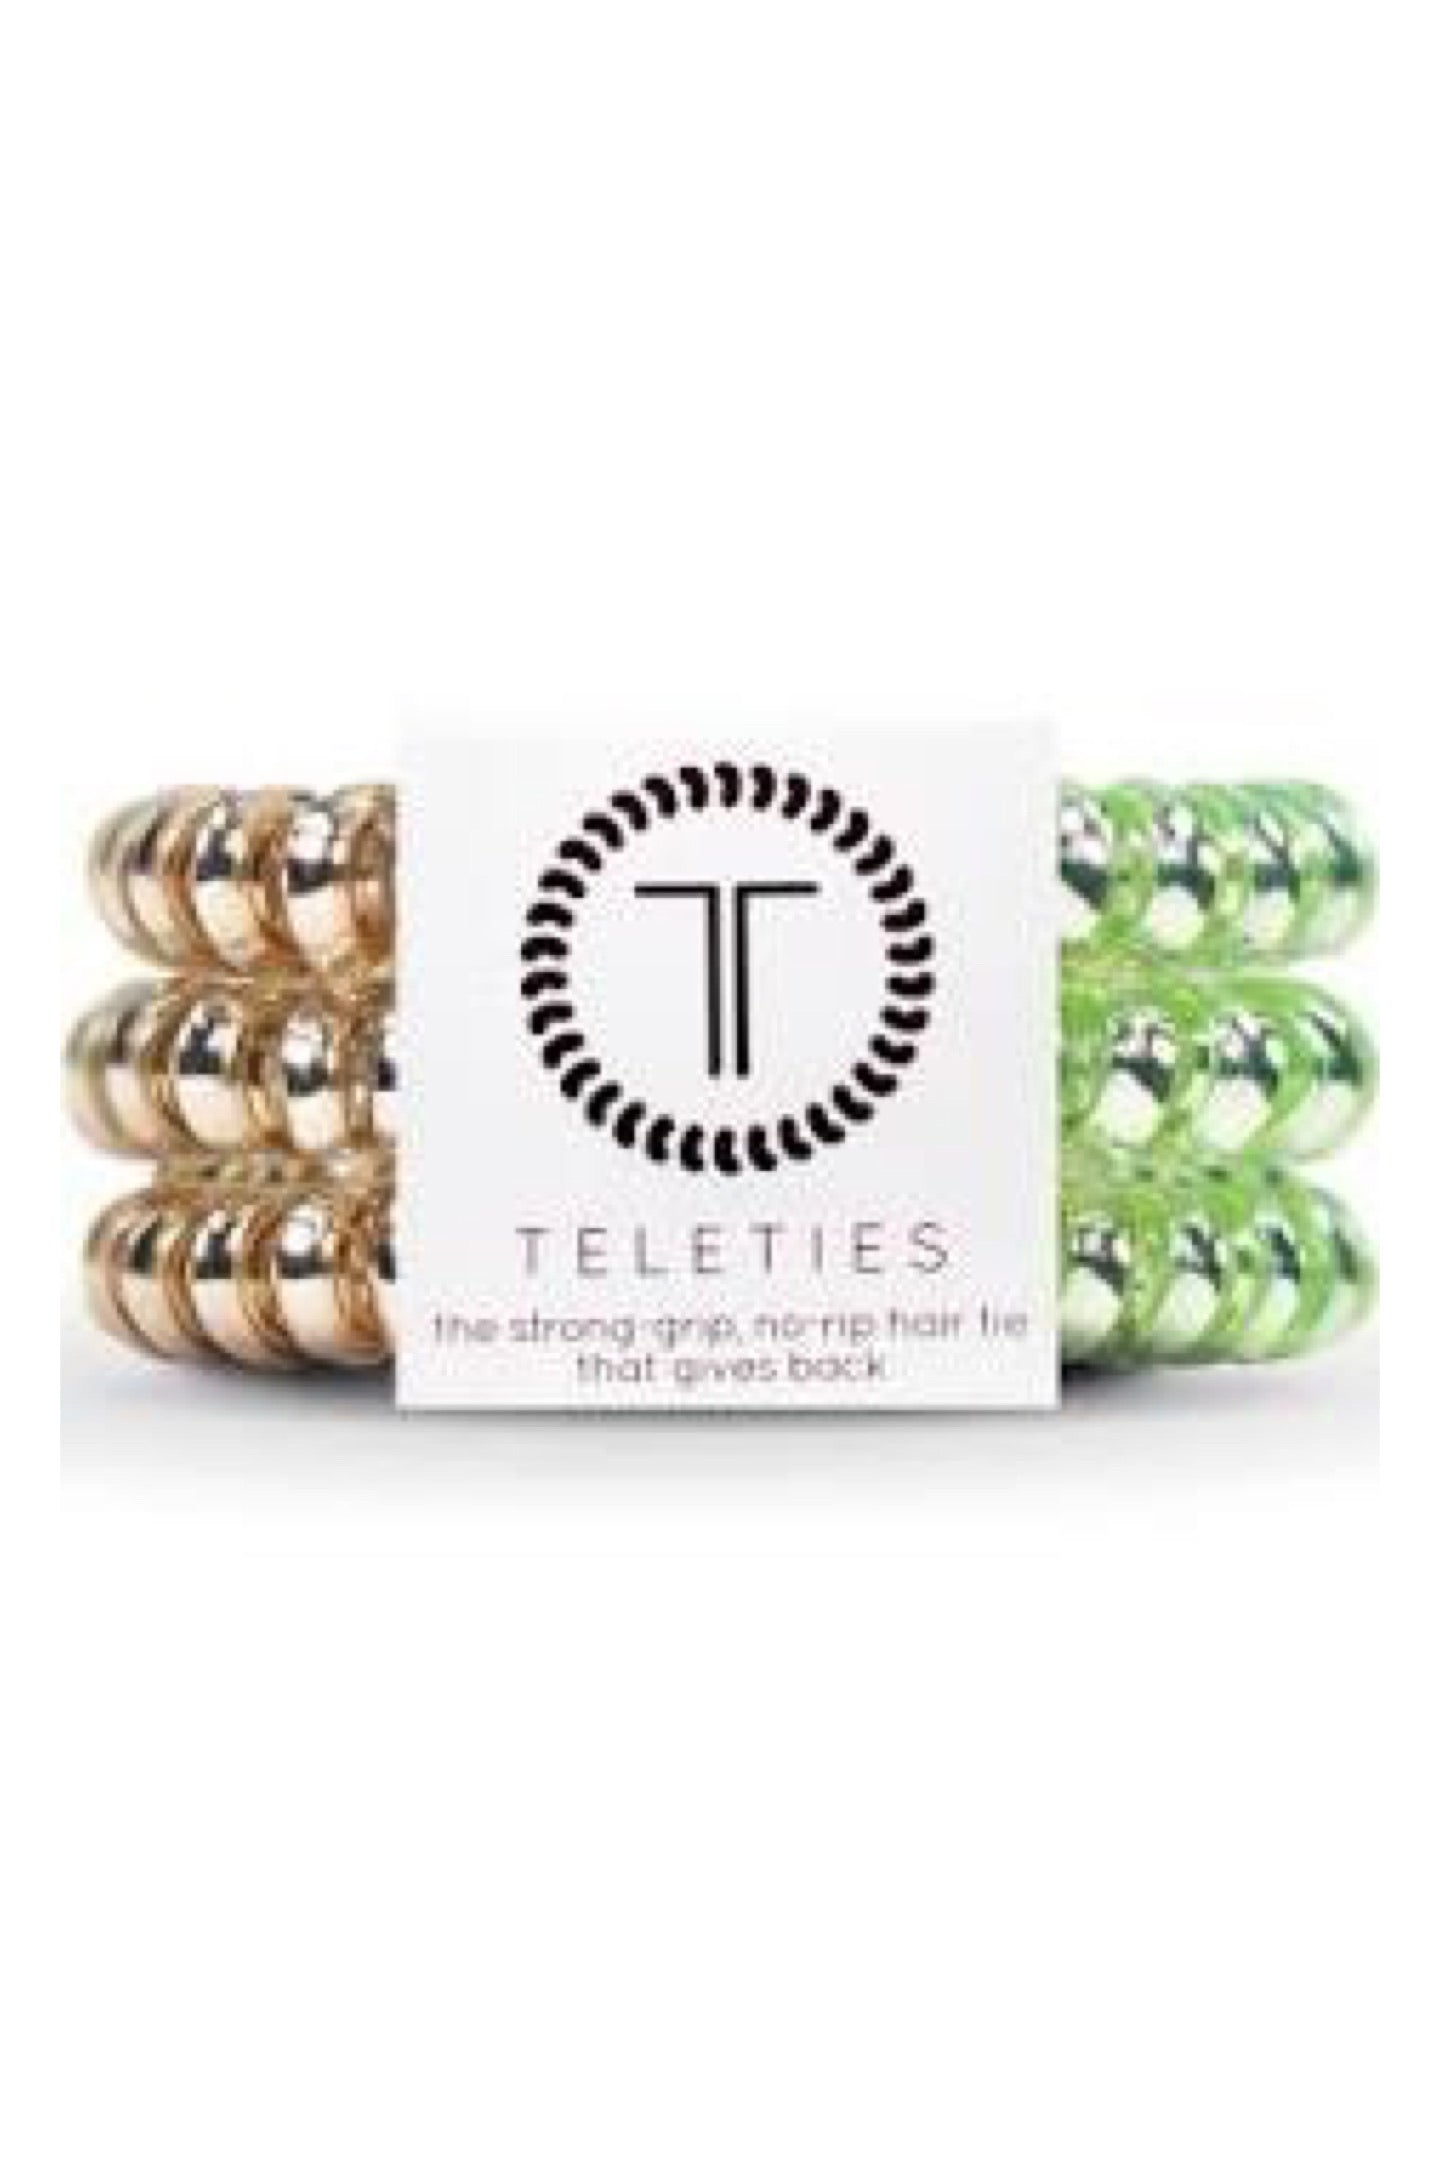 Teleties ~ Calypso Sheen Small 3 pack